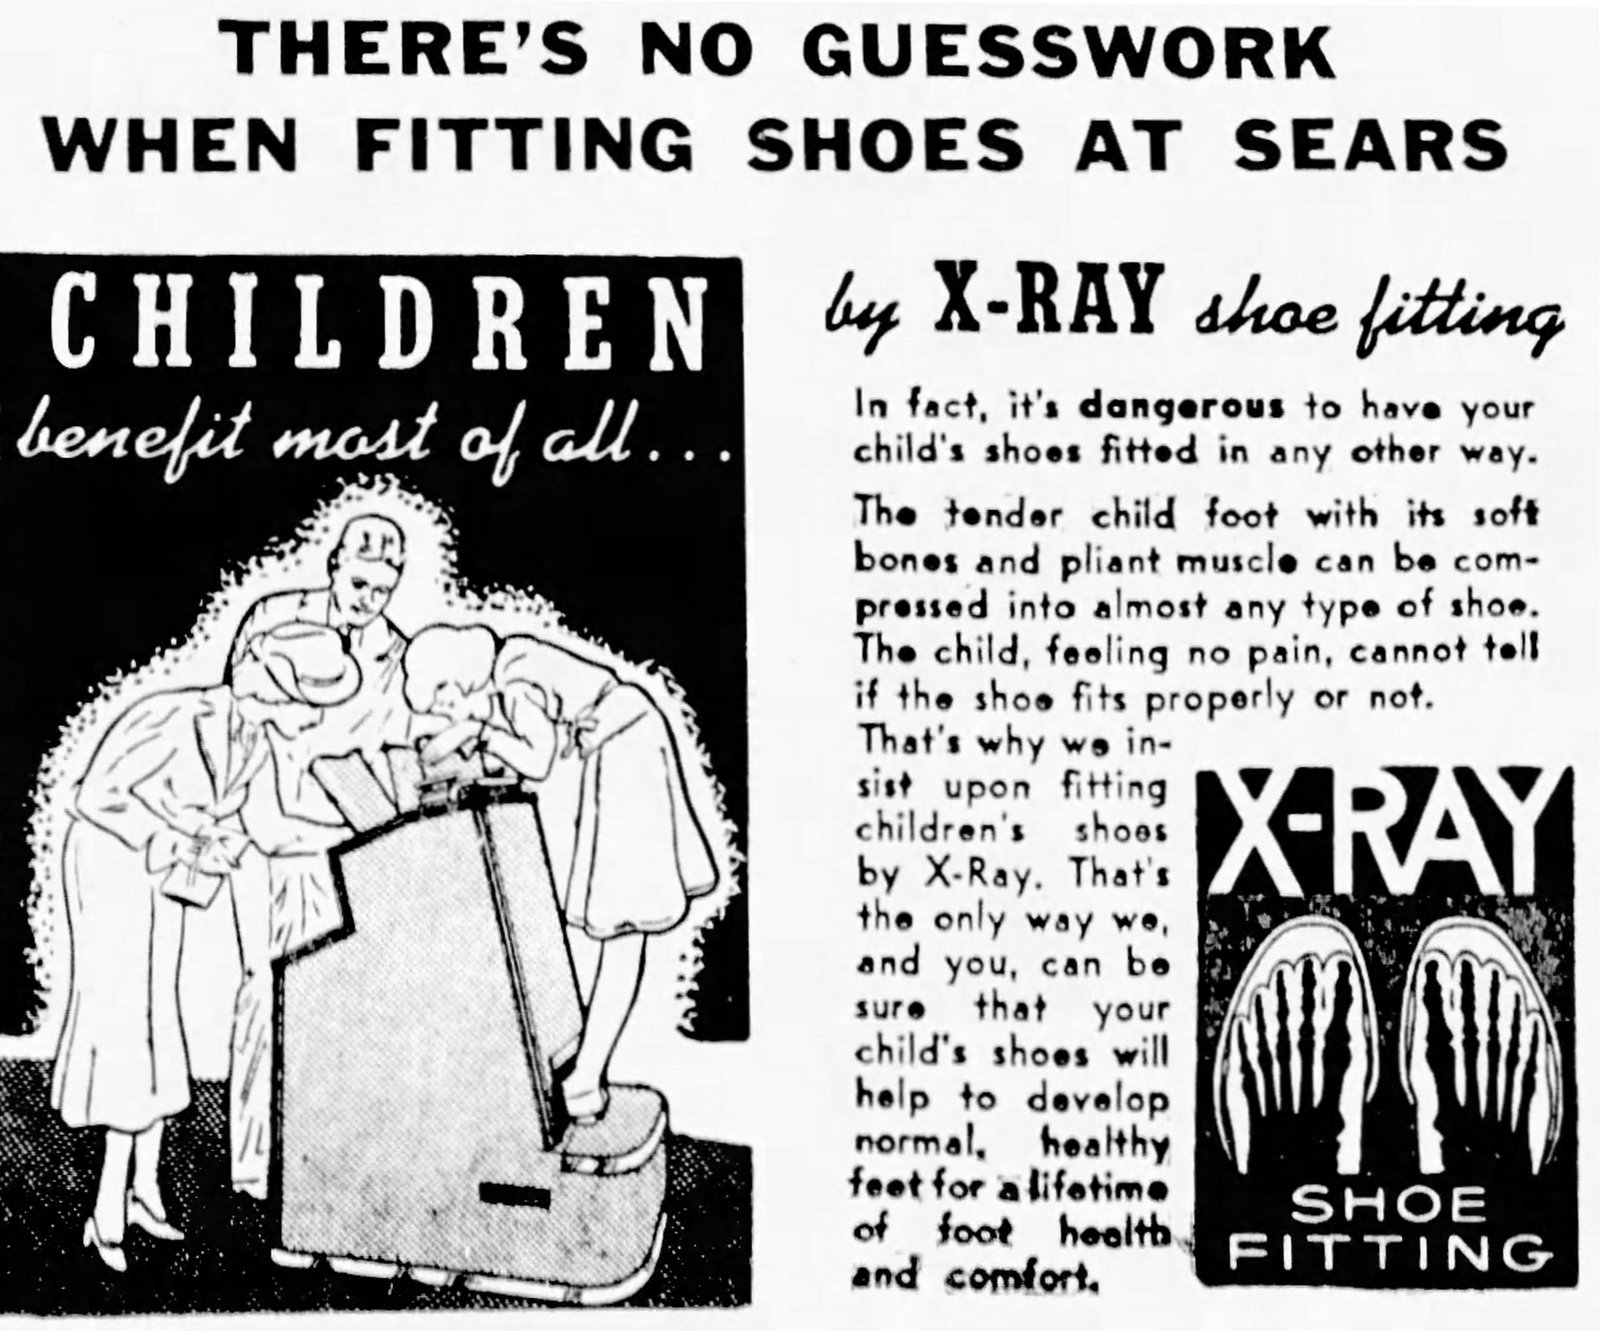 X-rays - There's no guesswork when fitting shoes at Sears (1943)